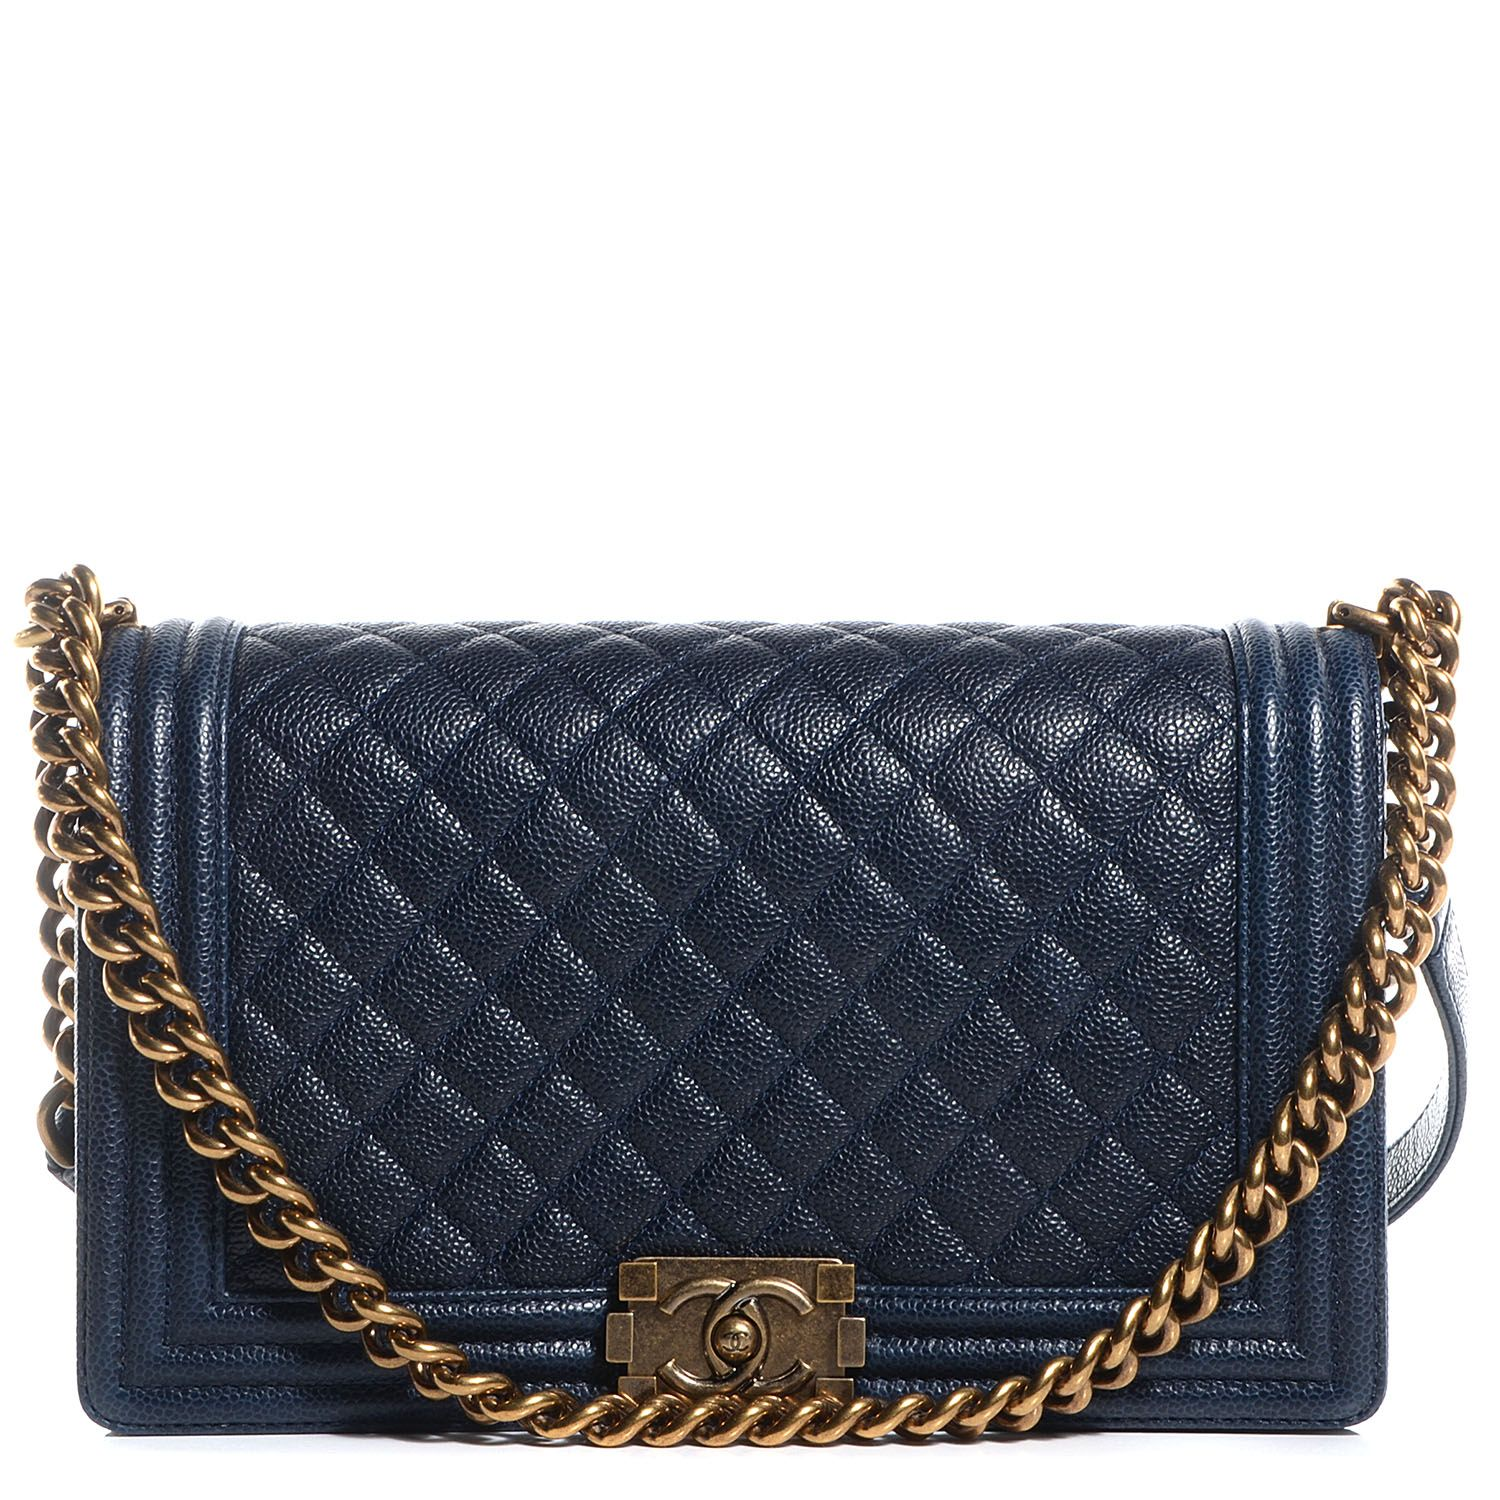 03e71af3b0 CHANEL Caviar Quilted New Medium Boy Flap Dark Navy Blue | Chanel ...